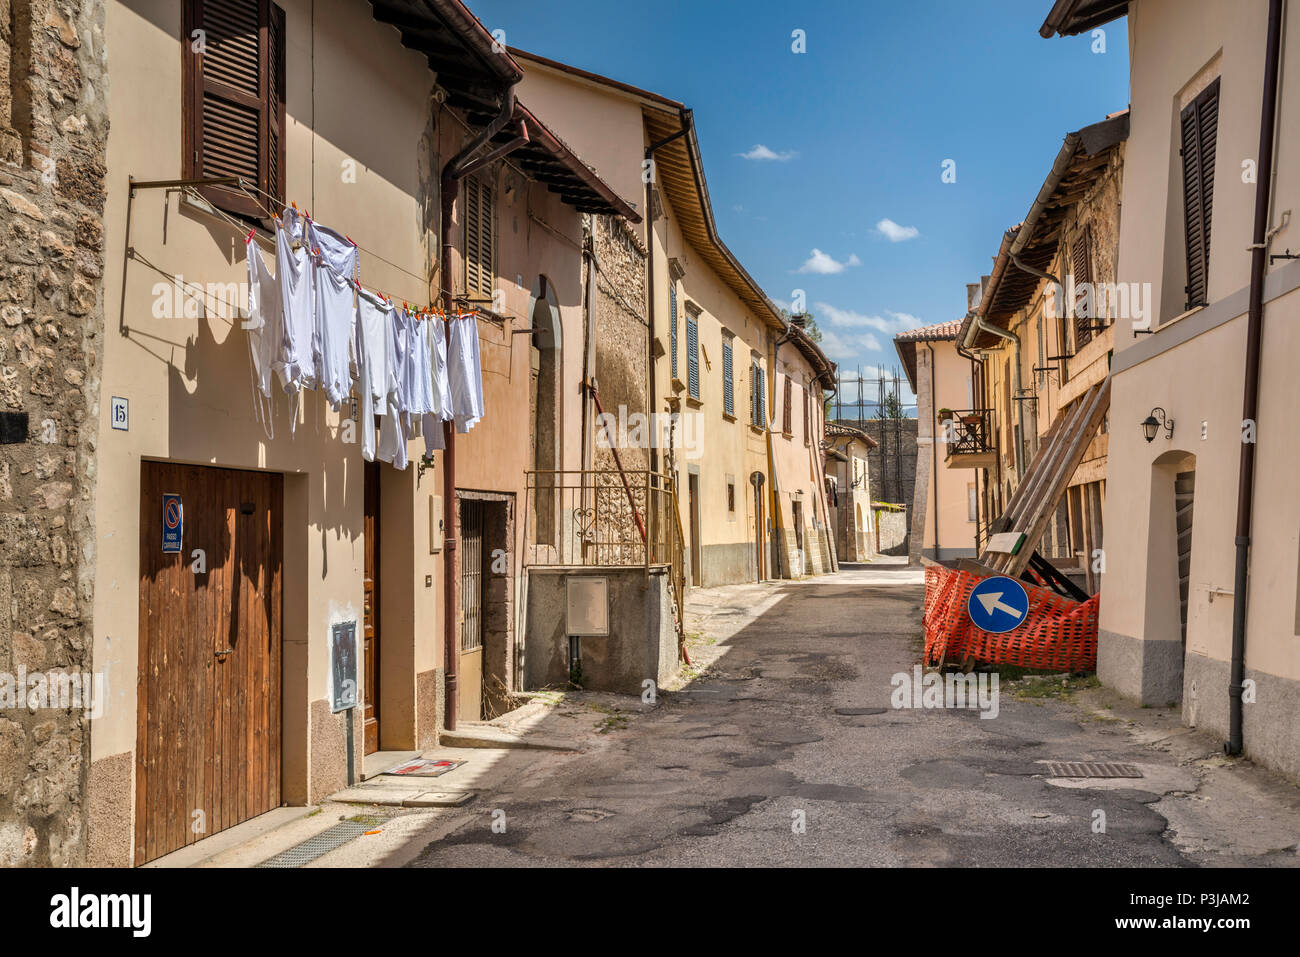 Life is returning to the city, devastated by 2016 series of earthquakes, street in Norcia, Umbria, Italy - Stock Image